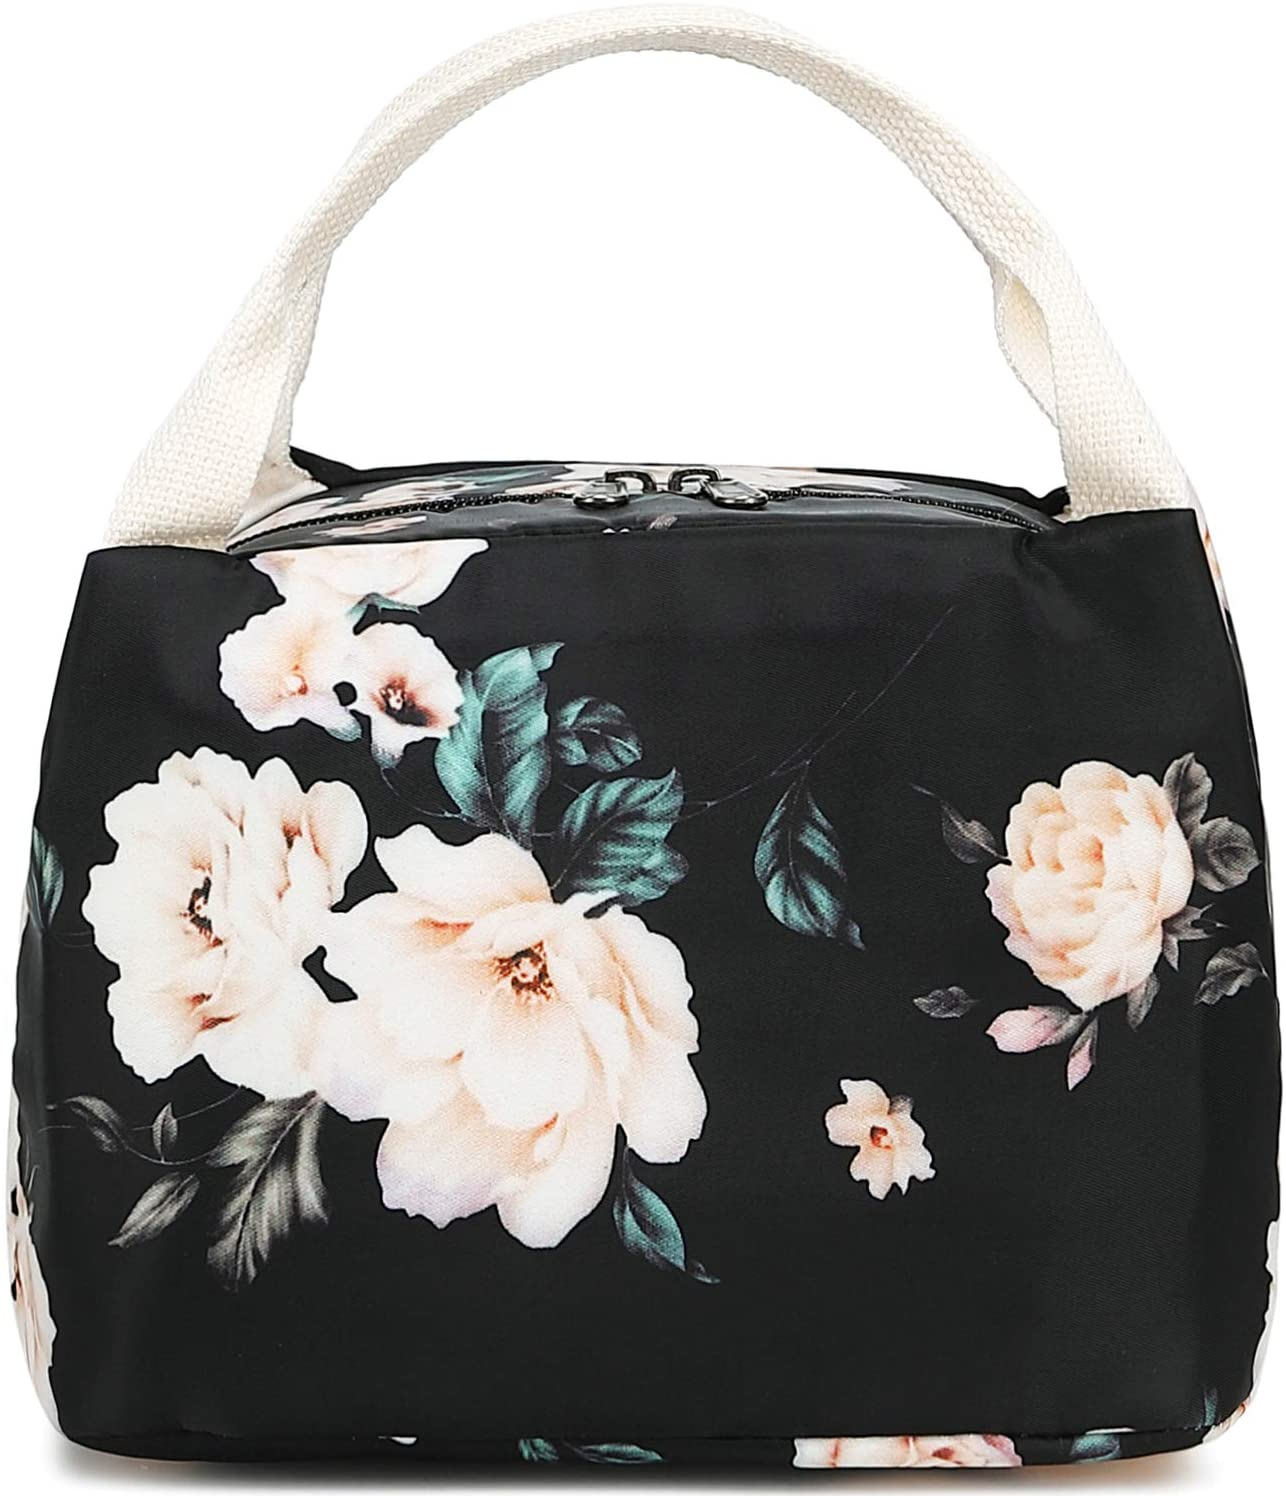 Insulated Lunch Tote Bag Women Kids Cooler Bag Work School Beach Picnic Fishing Lunch Bag Organizer Lunch Tote (E0066 Black)